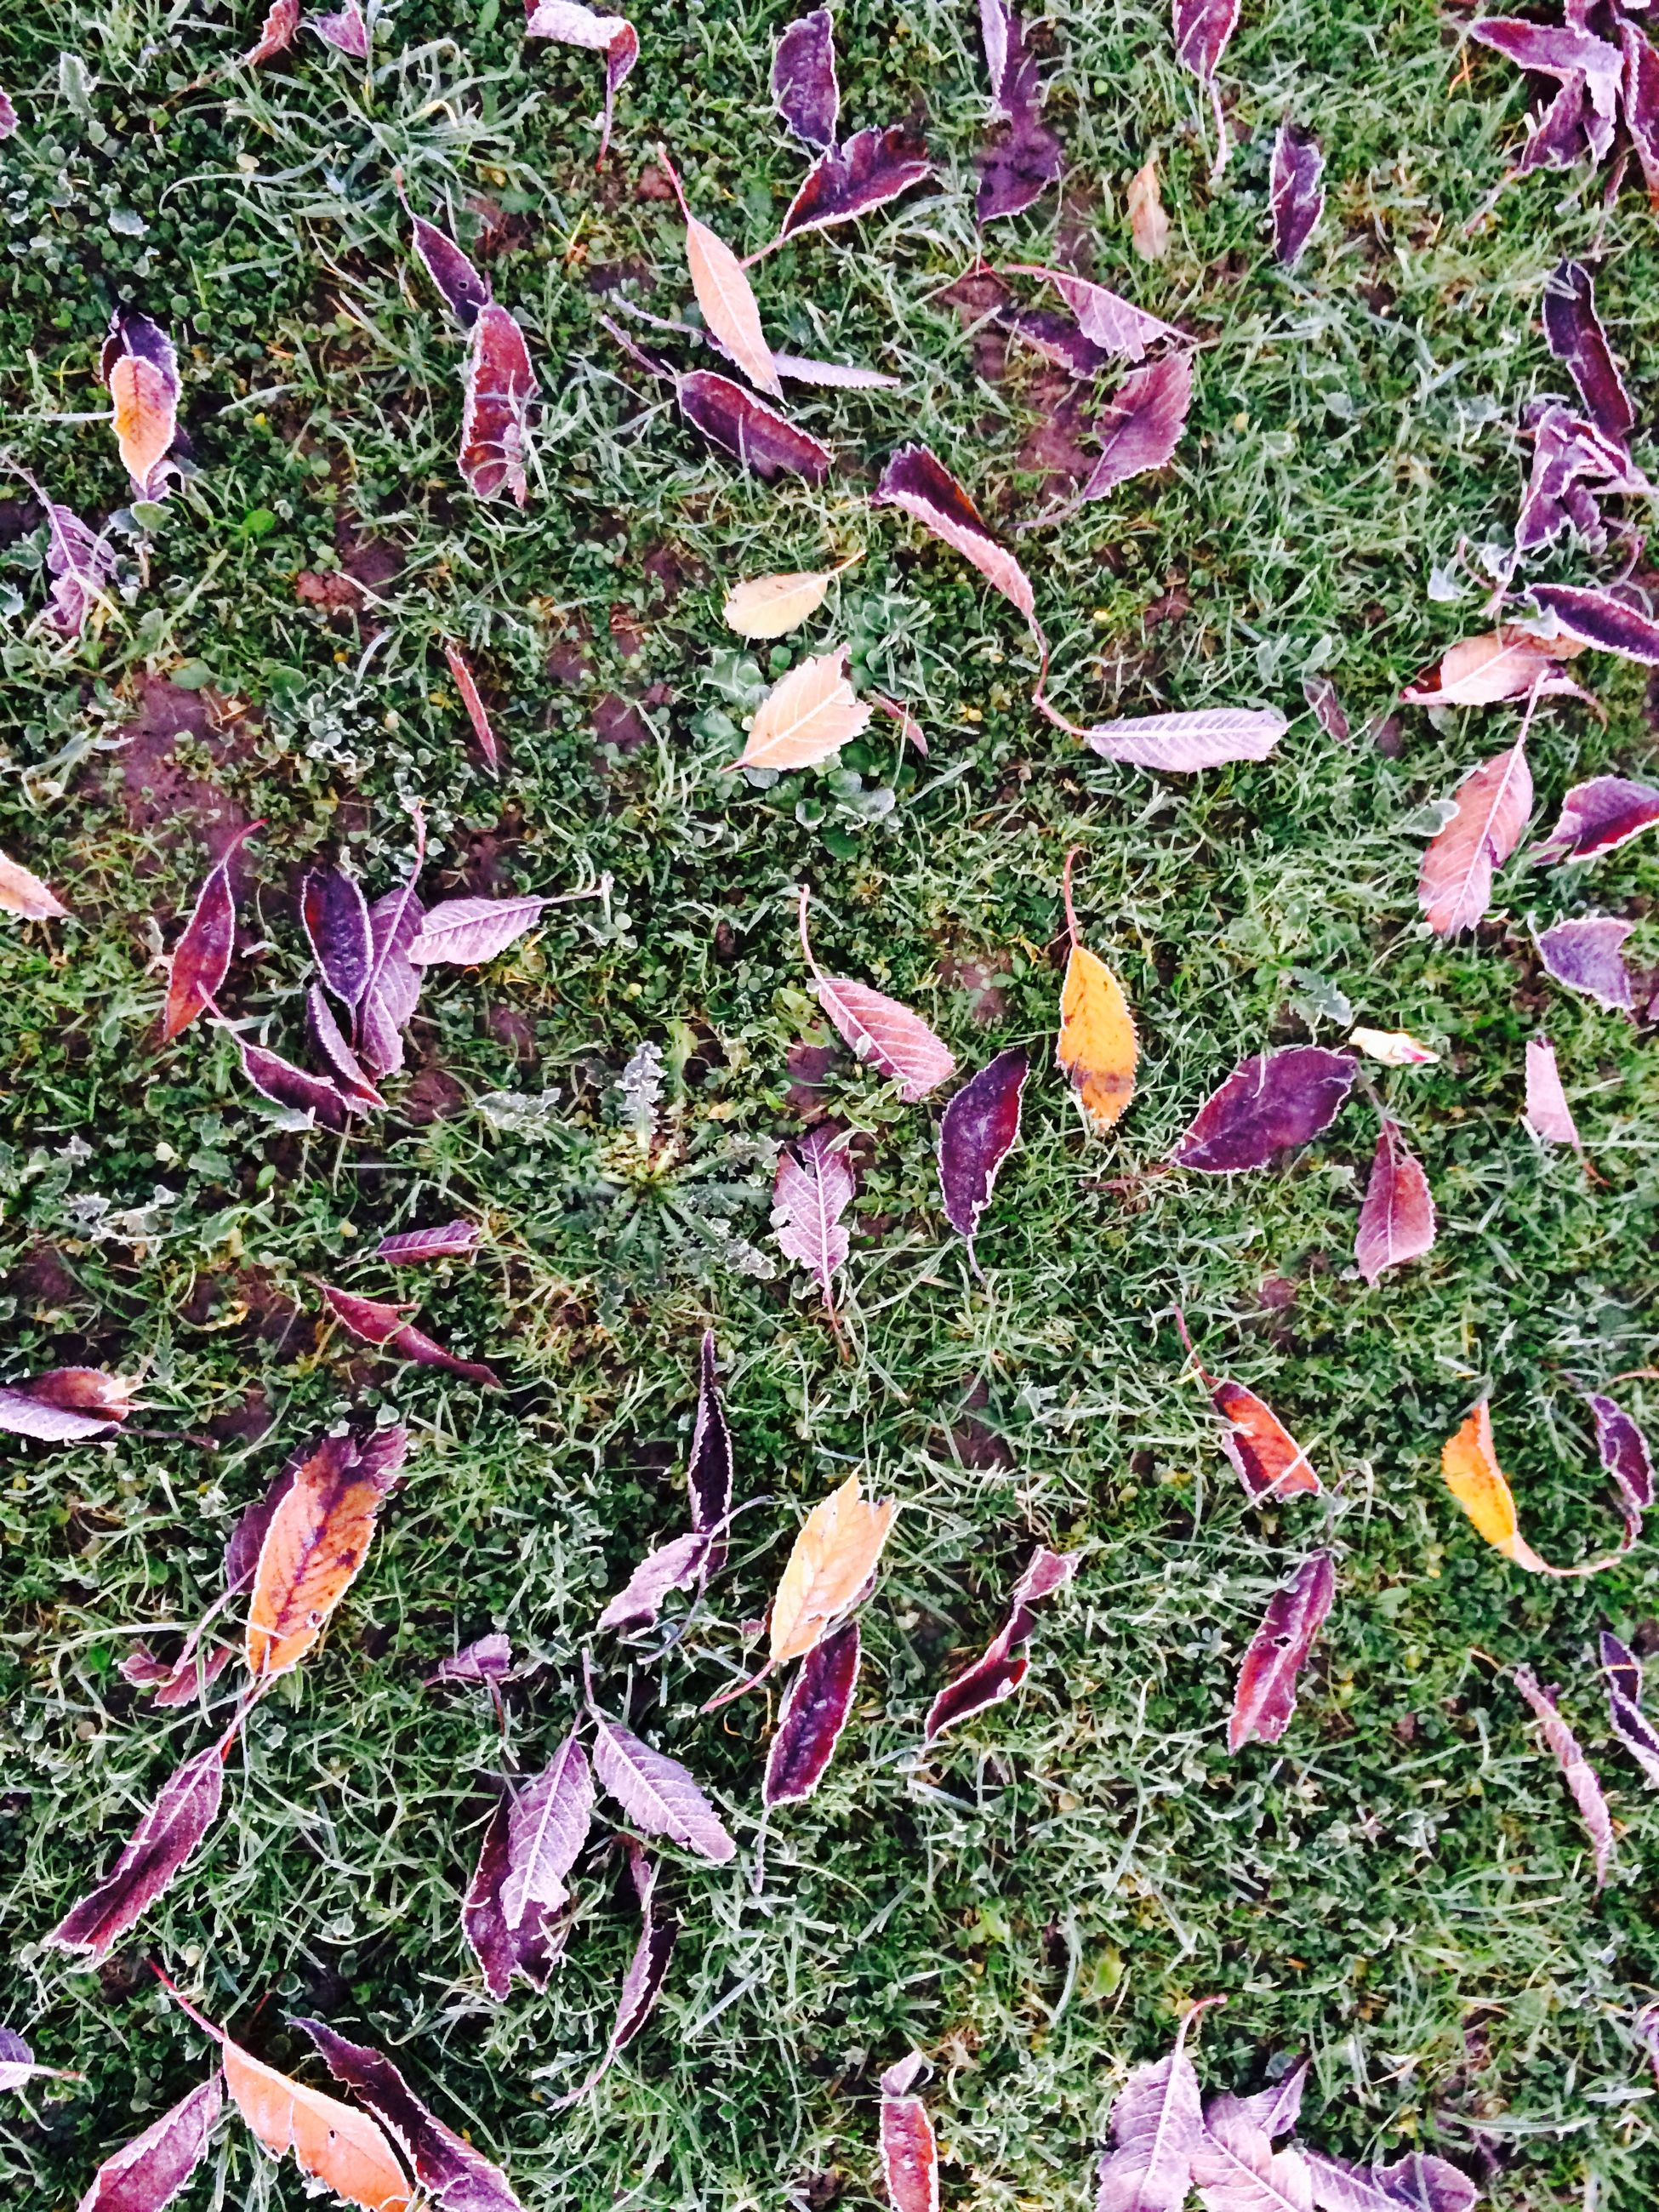 field, leaf, grass, high angle view, growth, nature, plant, autumn, beauty in nature, change, fallen, dry, day, tranquility, green color, outdoors, season, grassy, leaves, no people